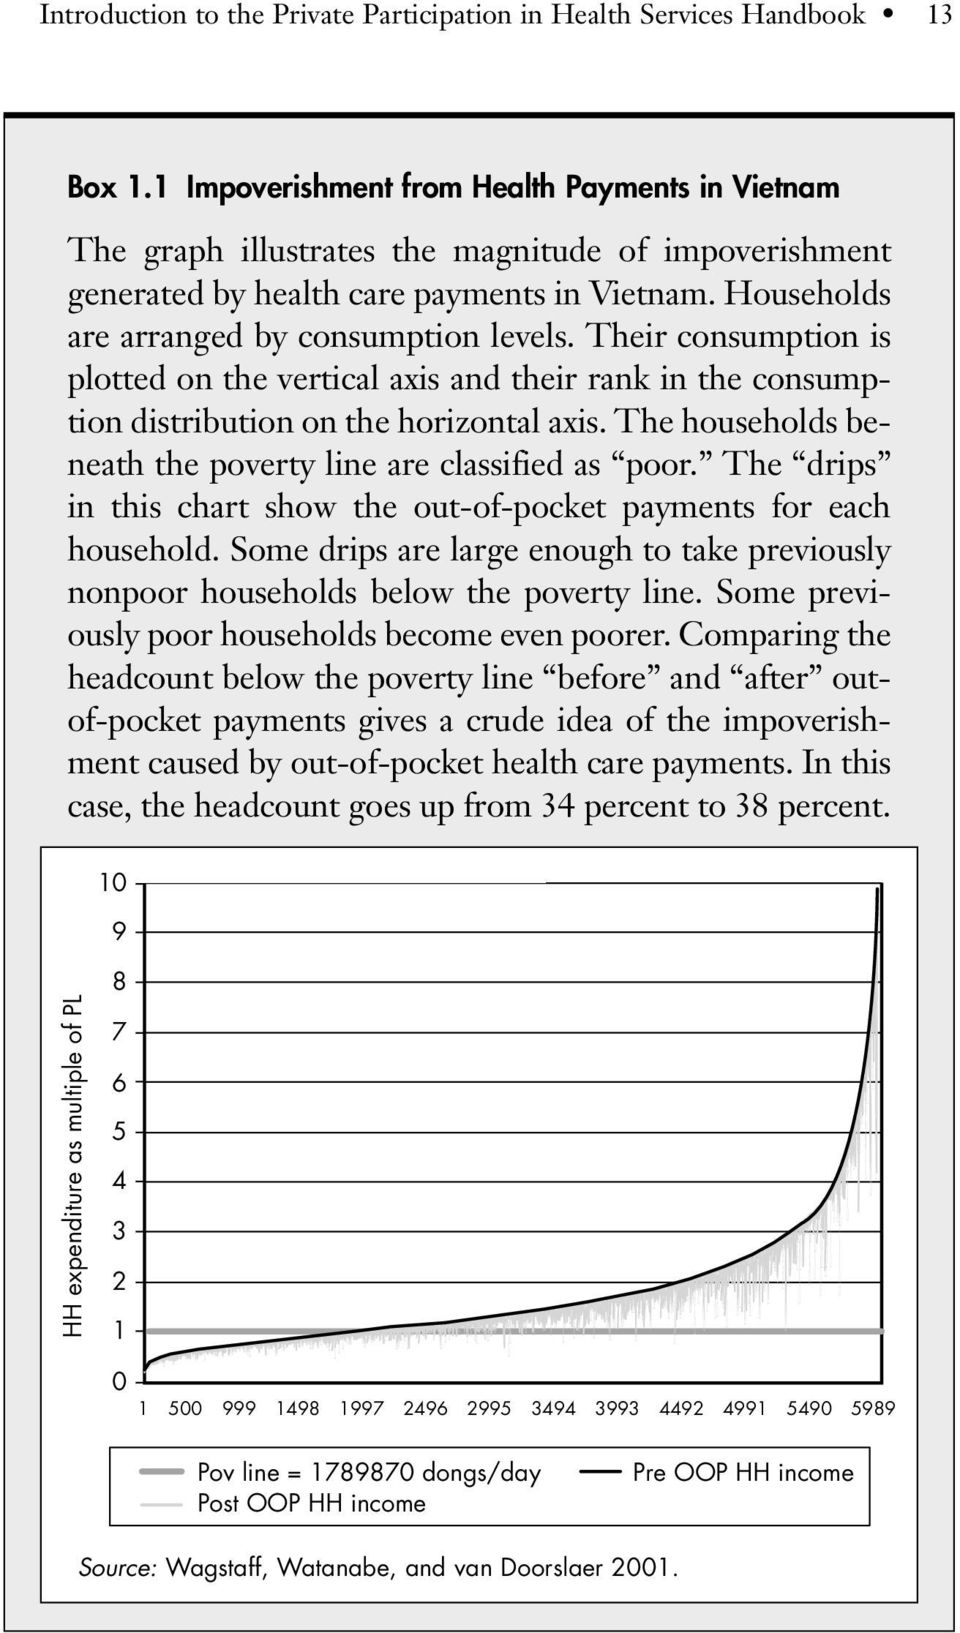 Their consumption is plotted on the vertical axis and their rank in the consumption distribution on the horizontal axis. The households beneath the poverty line are classified as poor.